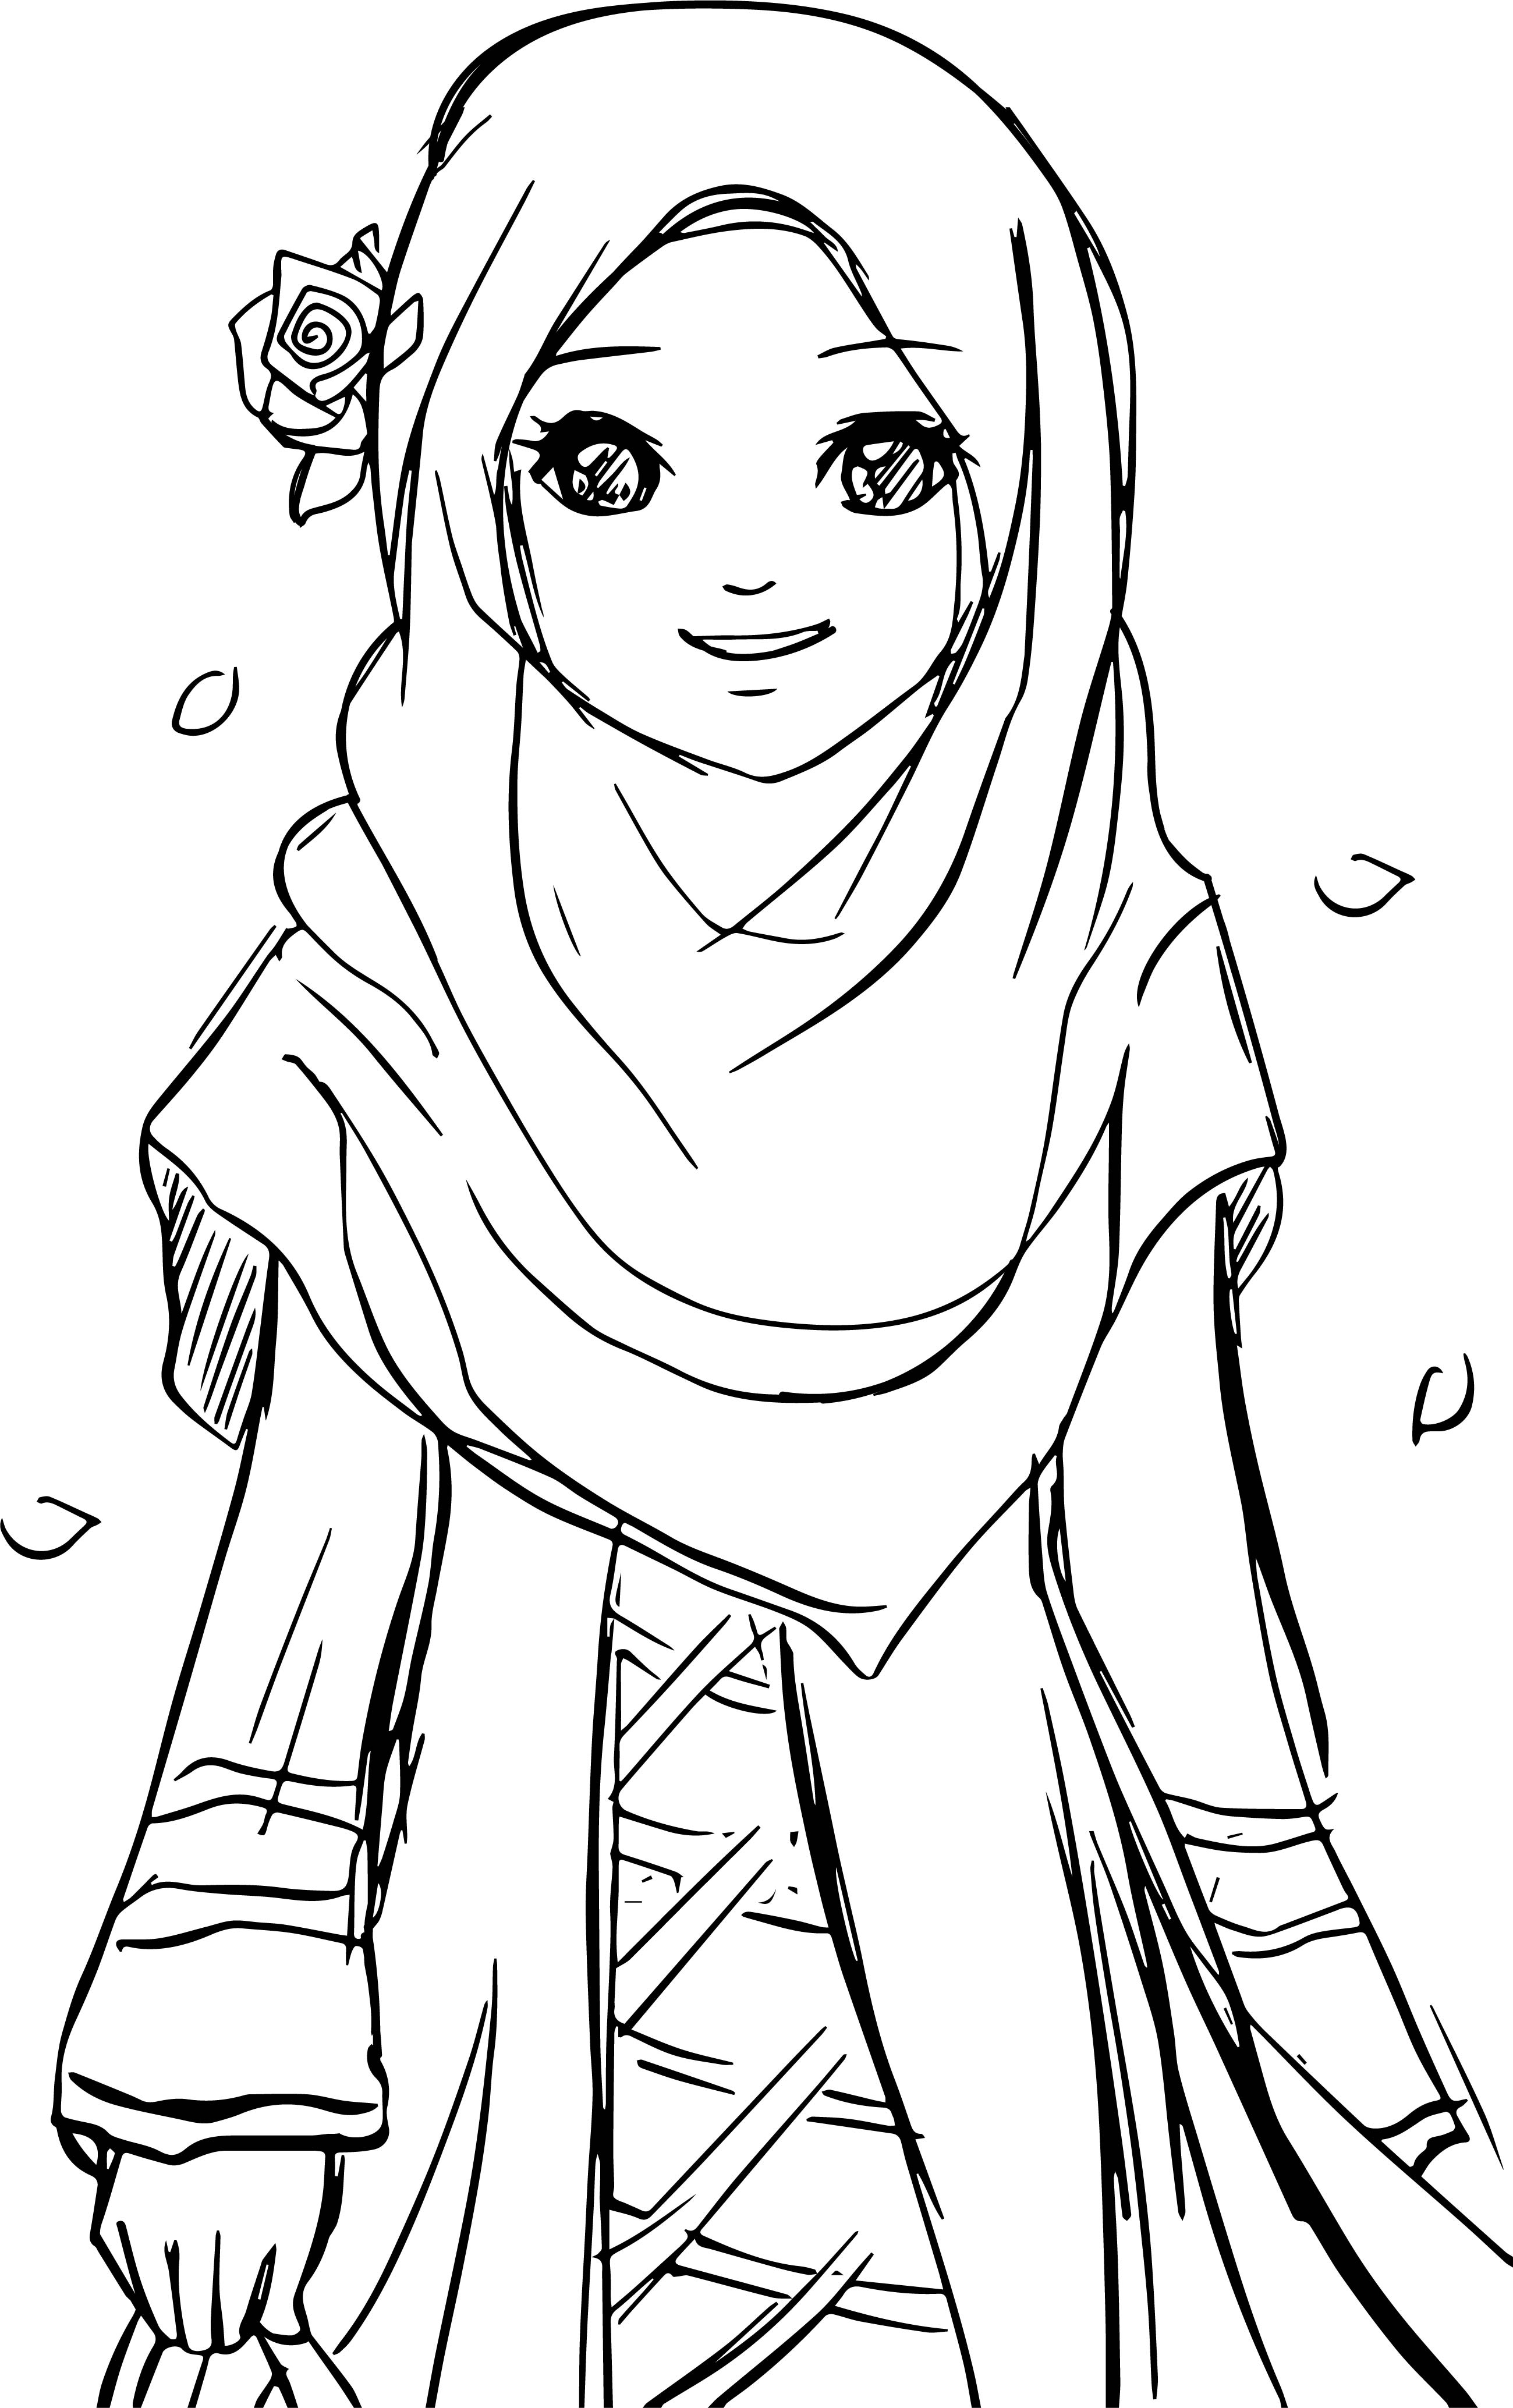 islamic coloring pages - page of muslim woman sketch templates